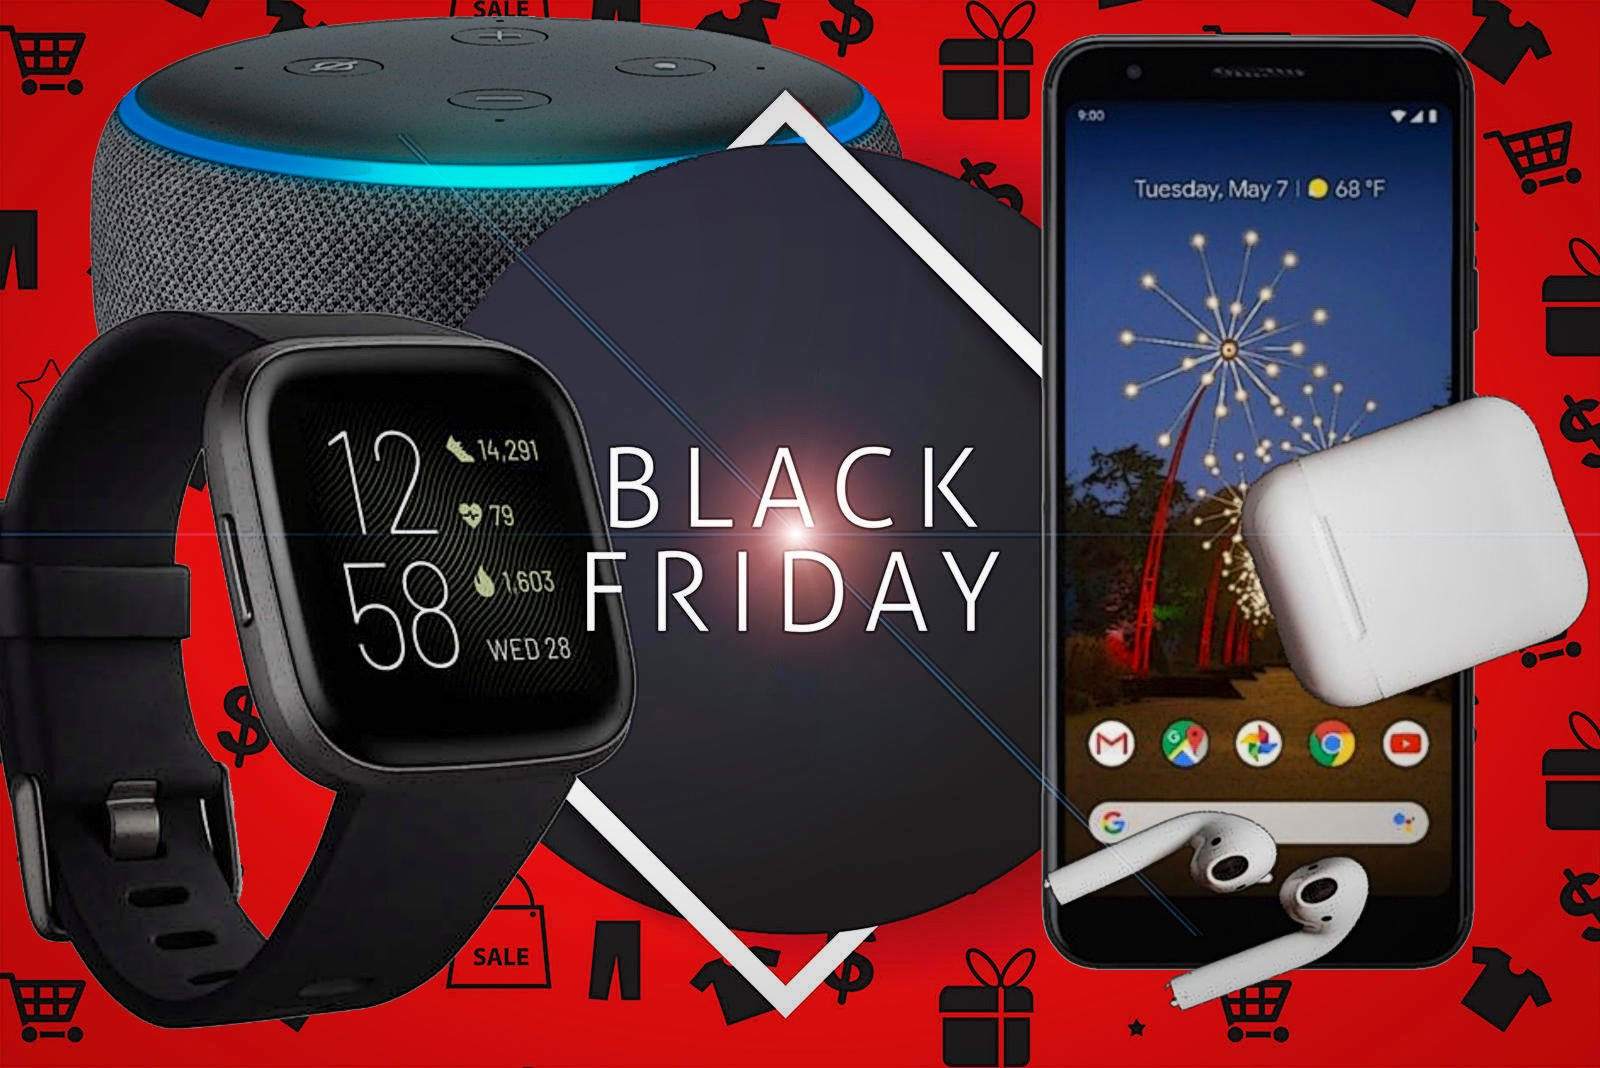 Black Friday 2019 Best Deals and Offers